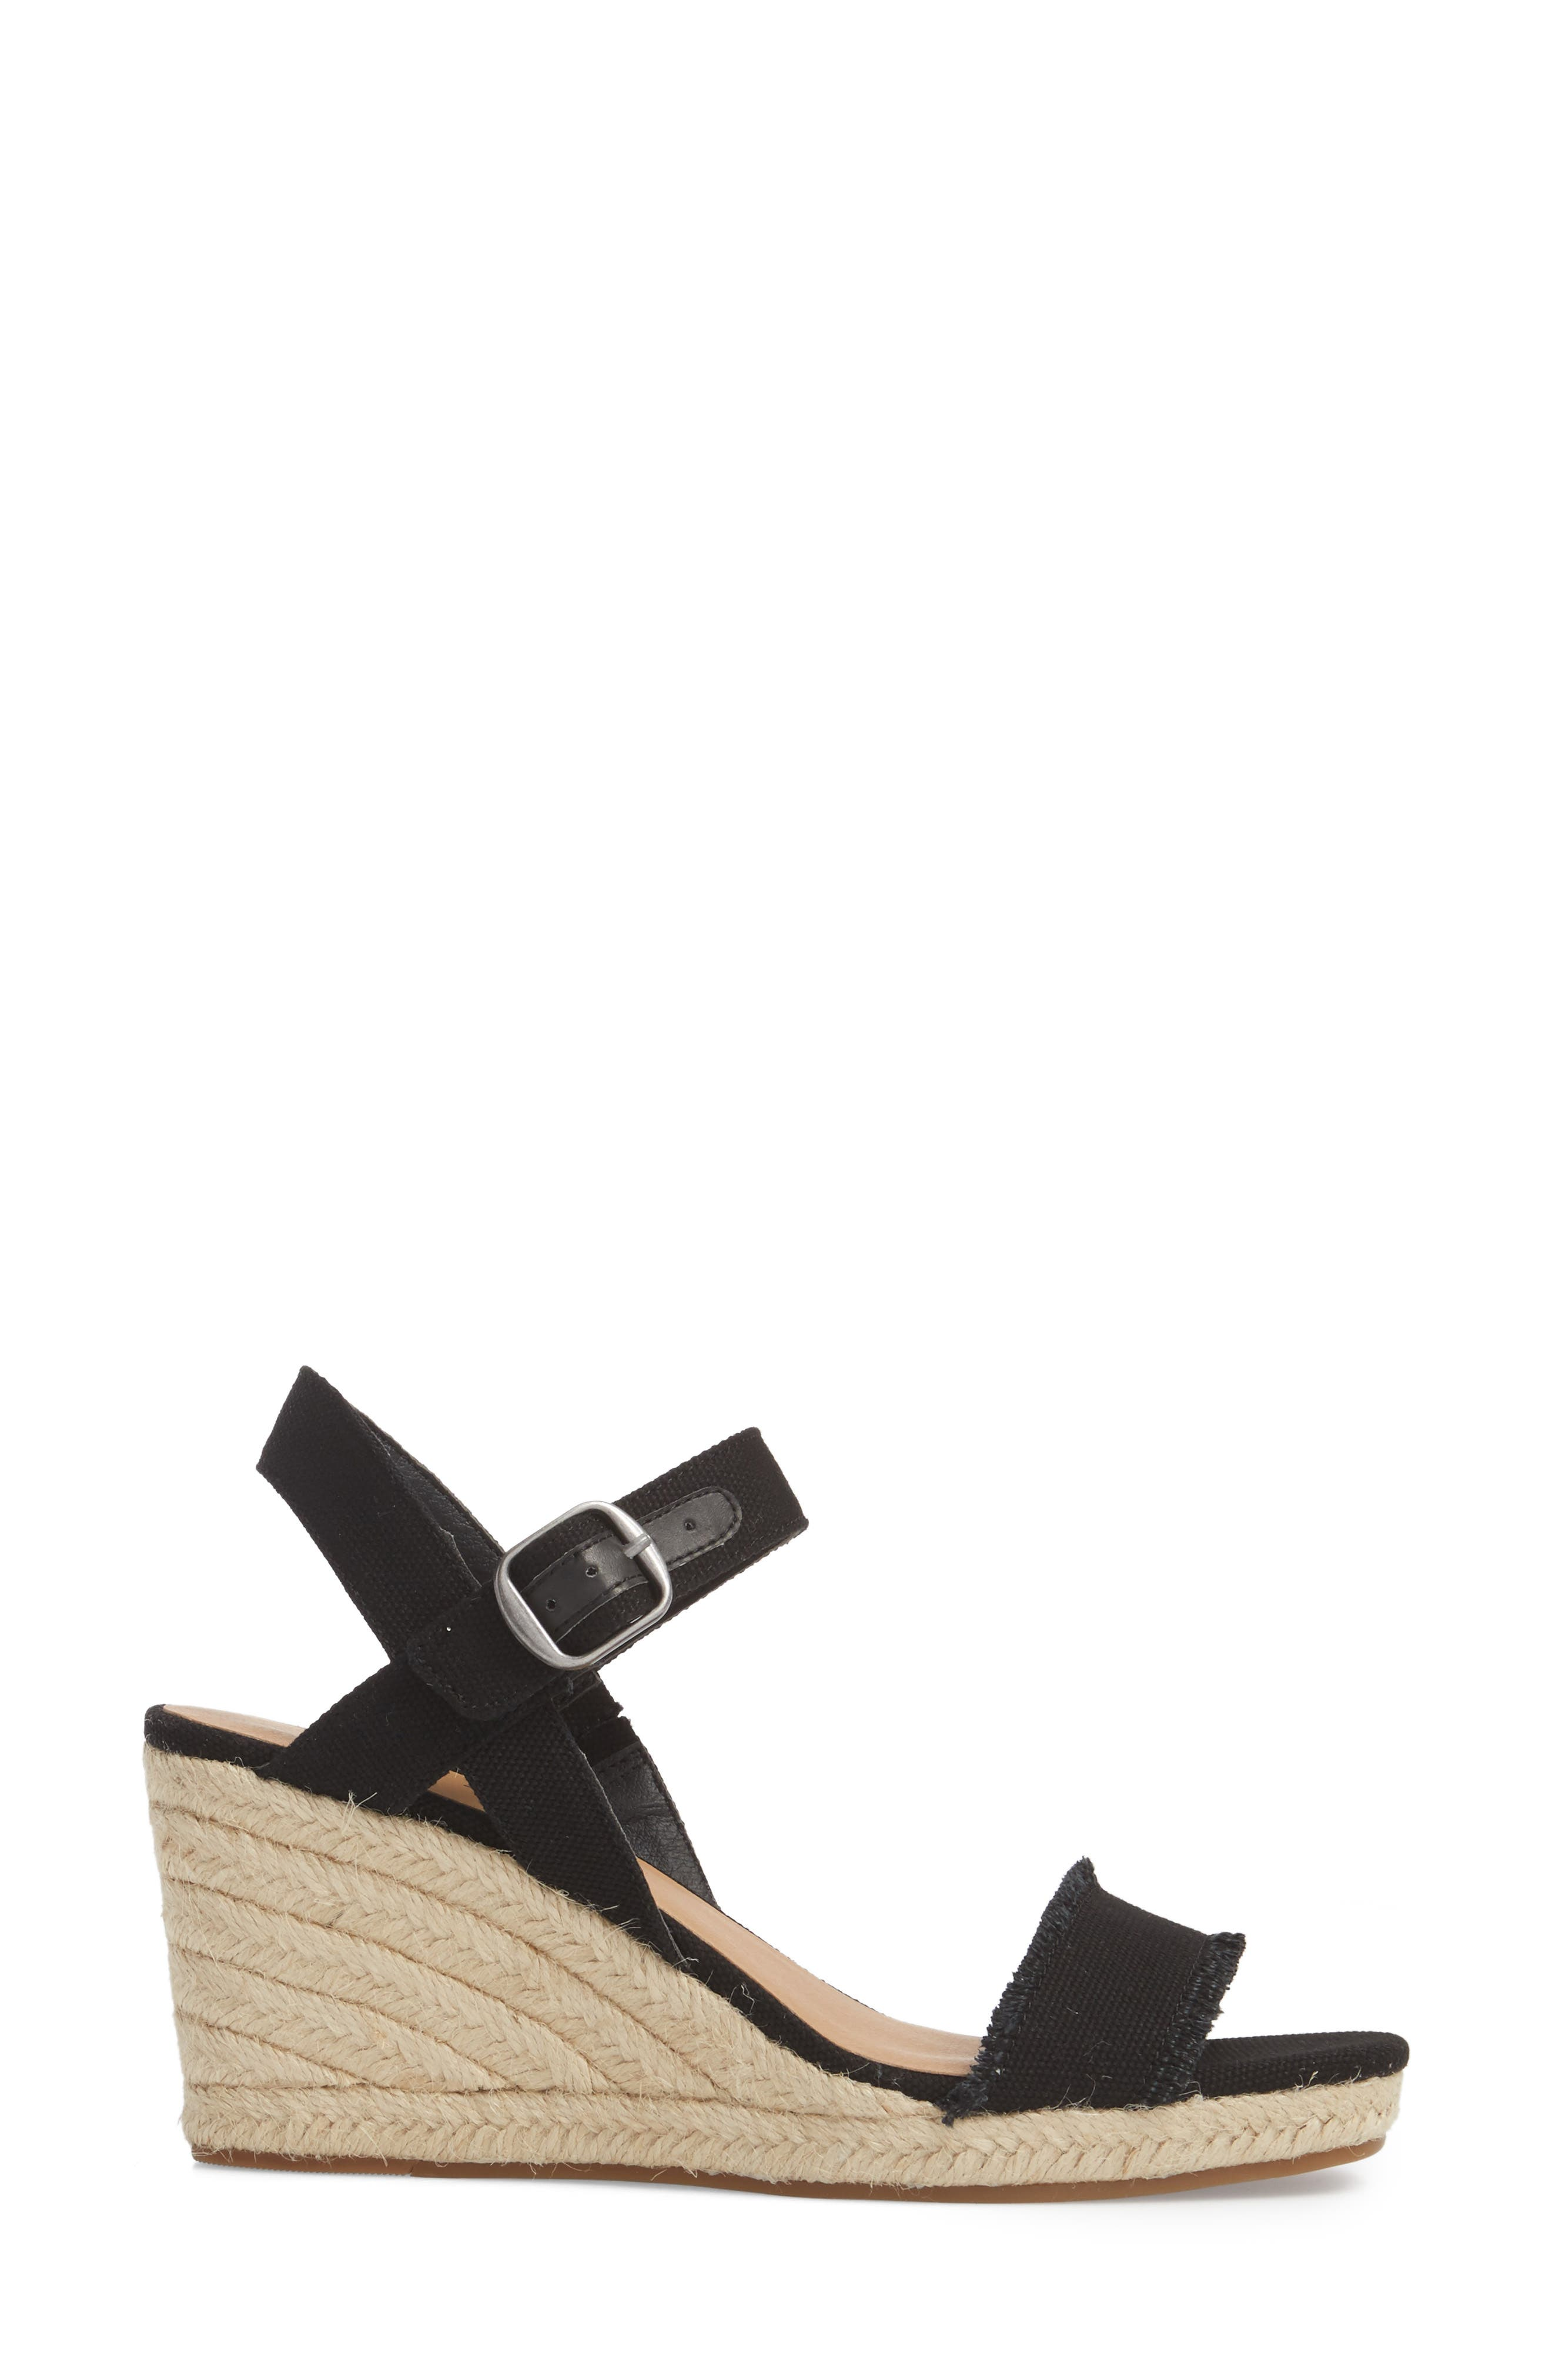 Marceline Squared Toe Wedge Sandal,                             Alternate thumbnail 3, color,                             001